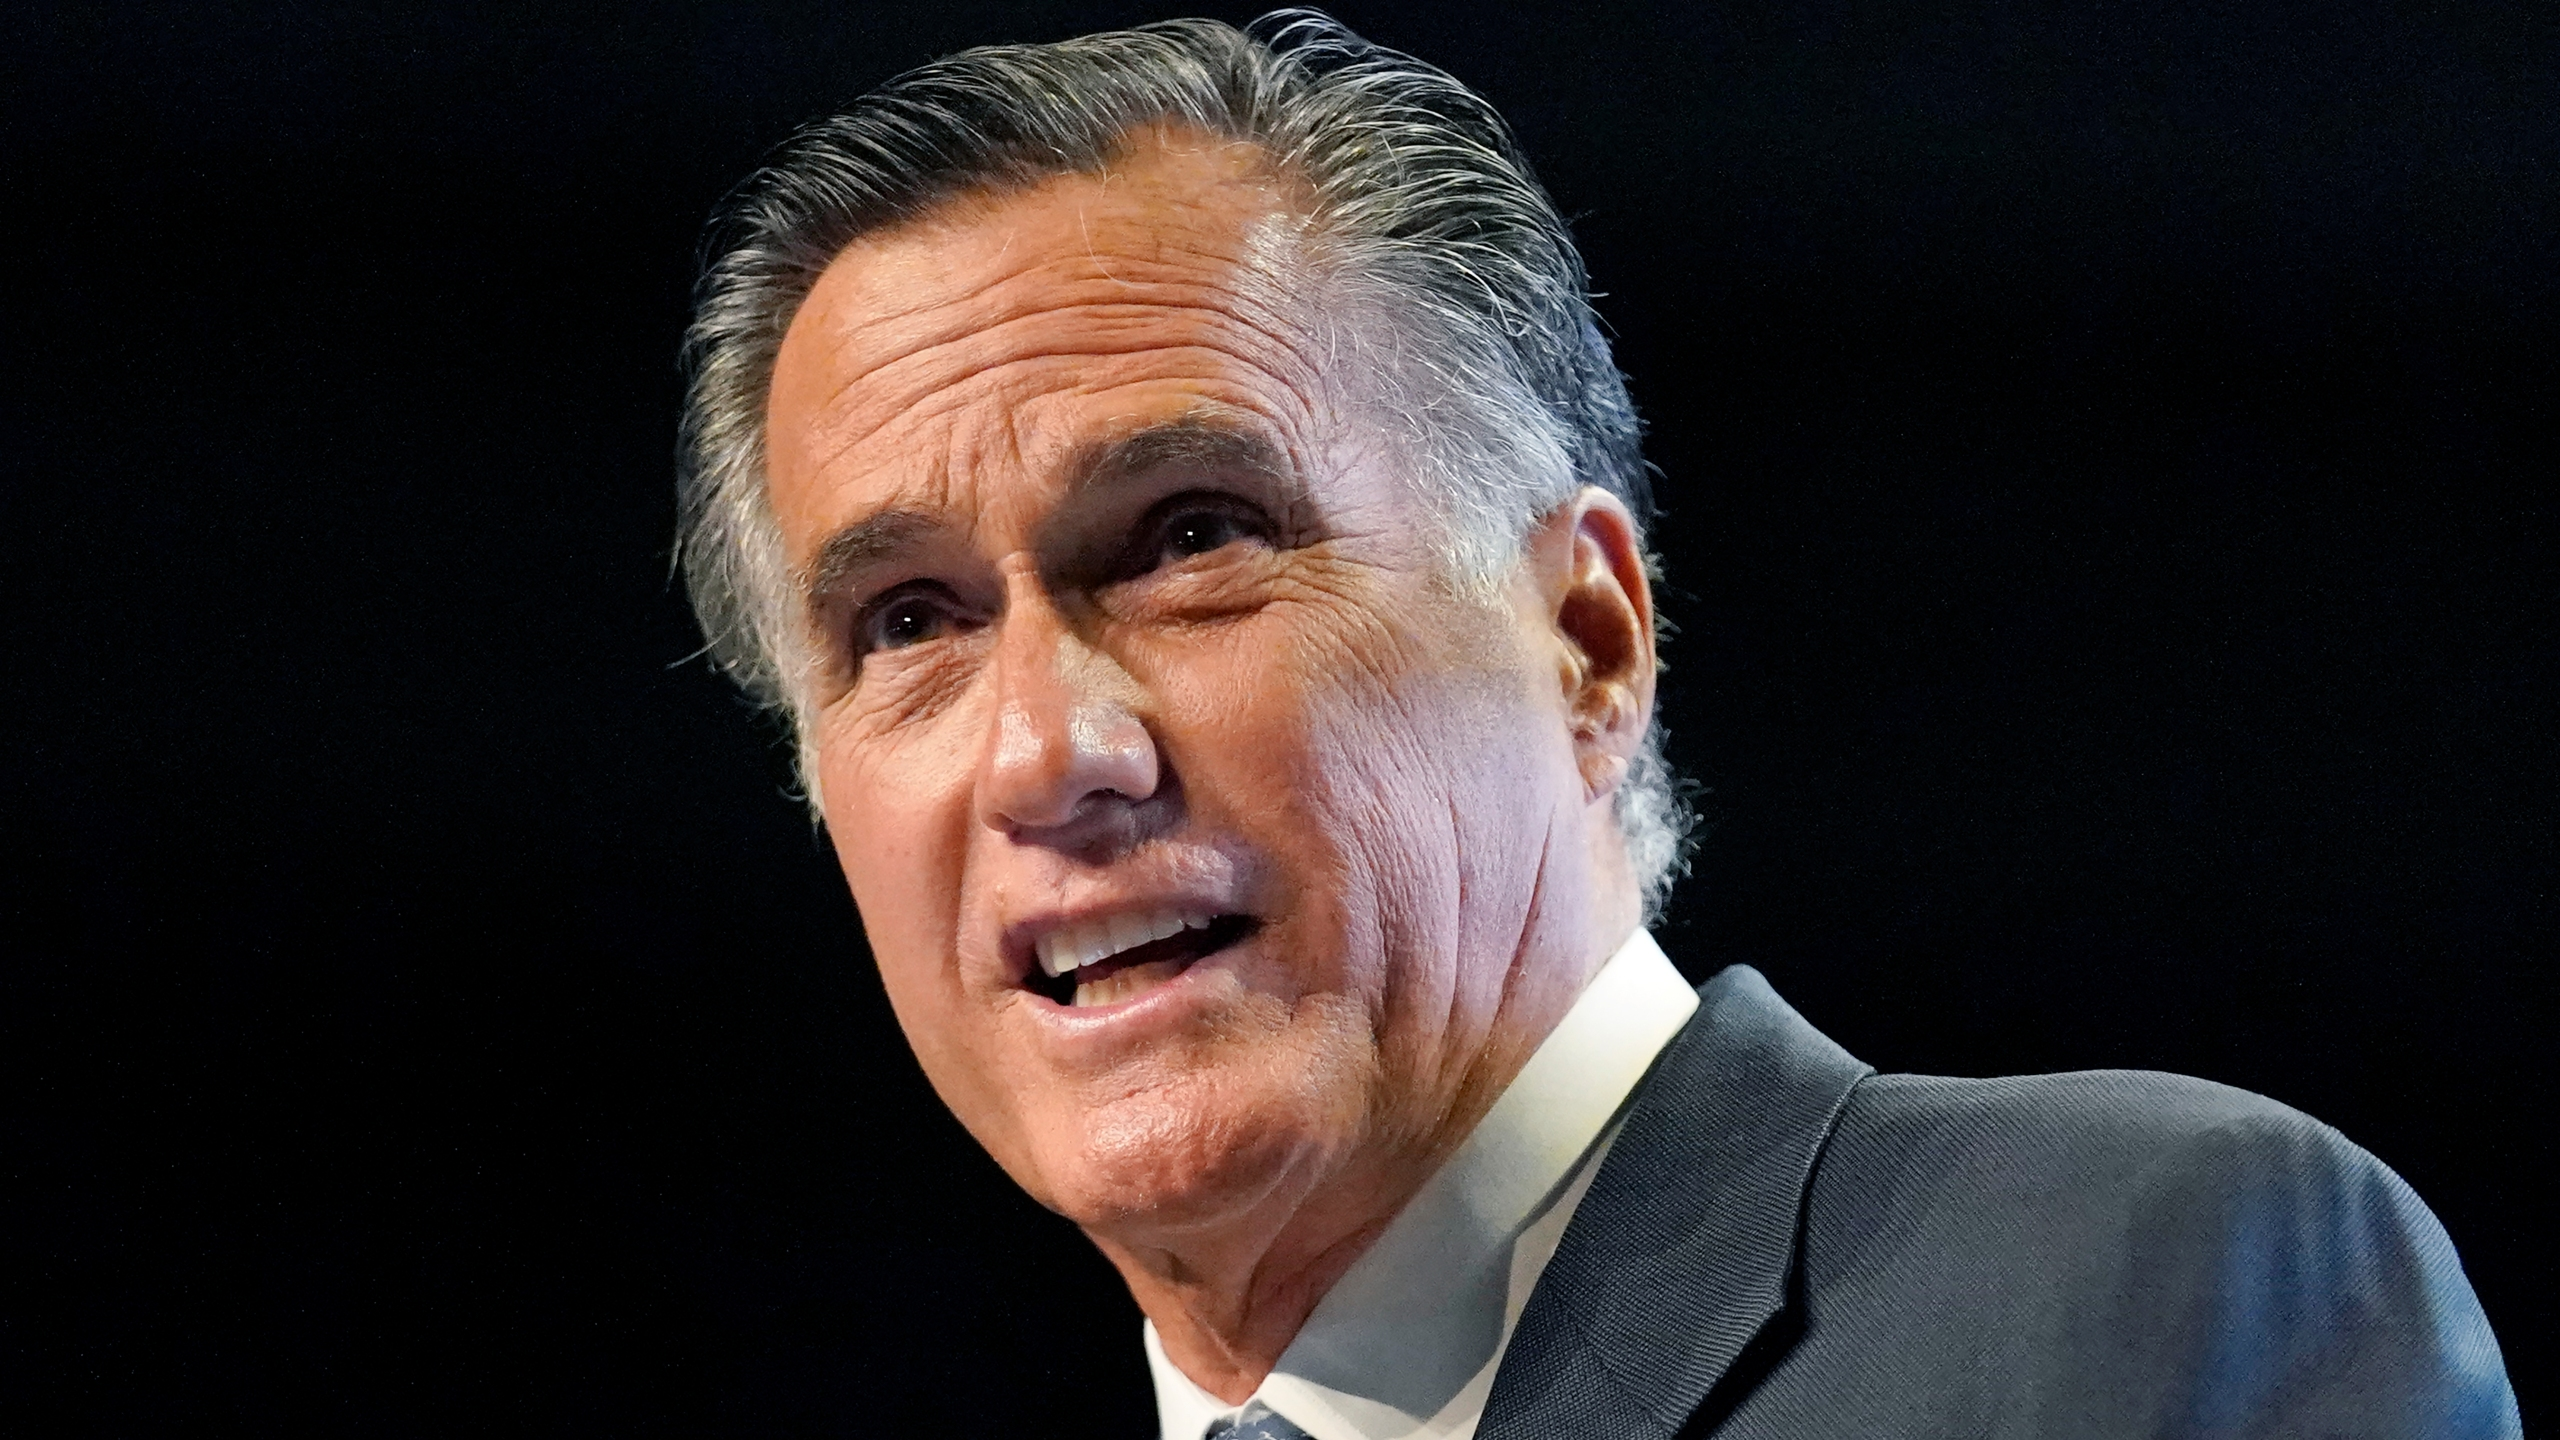 Sen. Mitt Romney addresses the Utah Republican Party 2021 Organizing Convention Saturday, May 1, 2021, in West Valley City, Utah. Romney was booed as he addressed the Utah GOP convention. (AP Photo/Rick Bowmer)